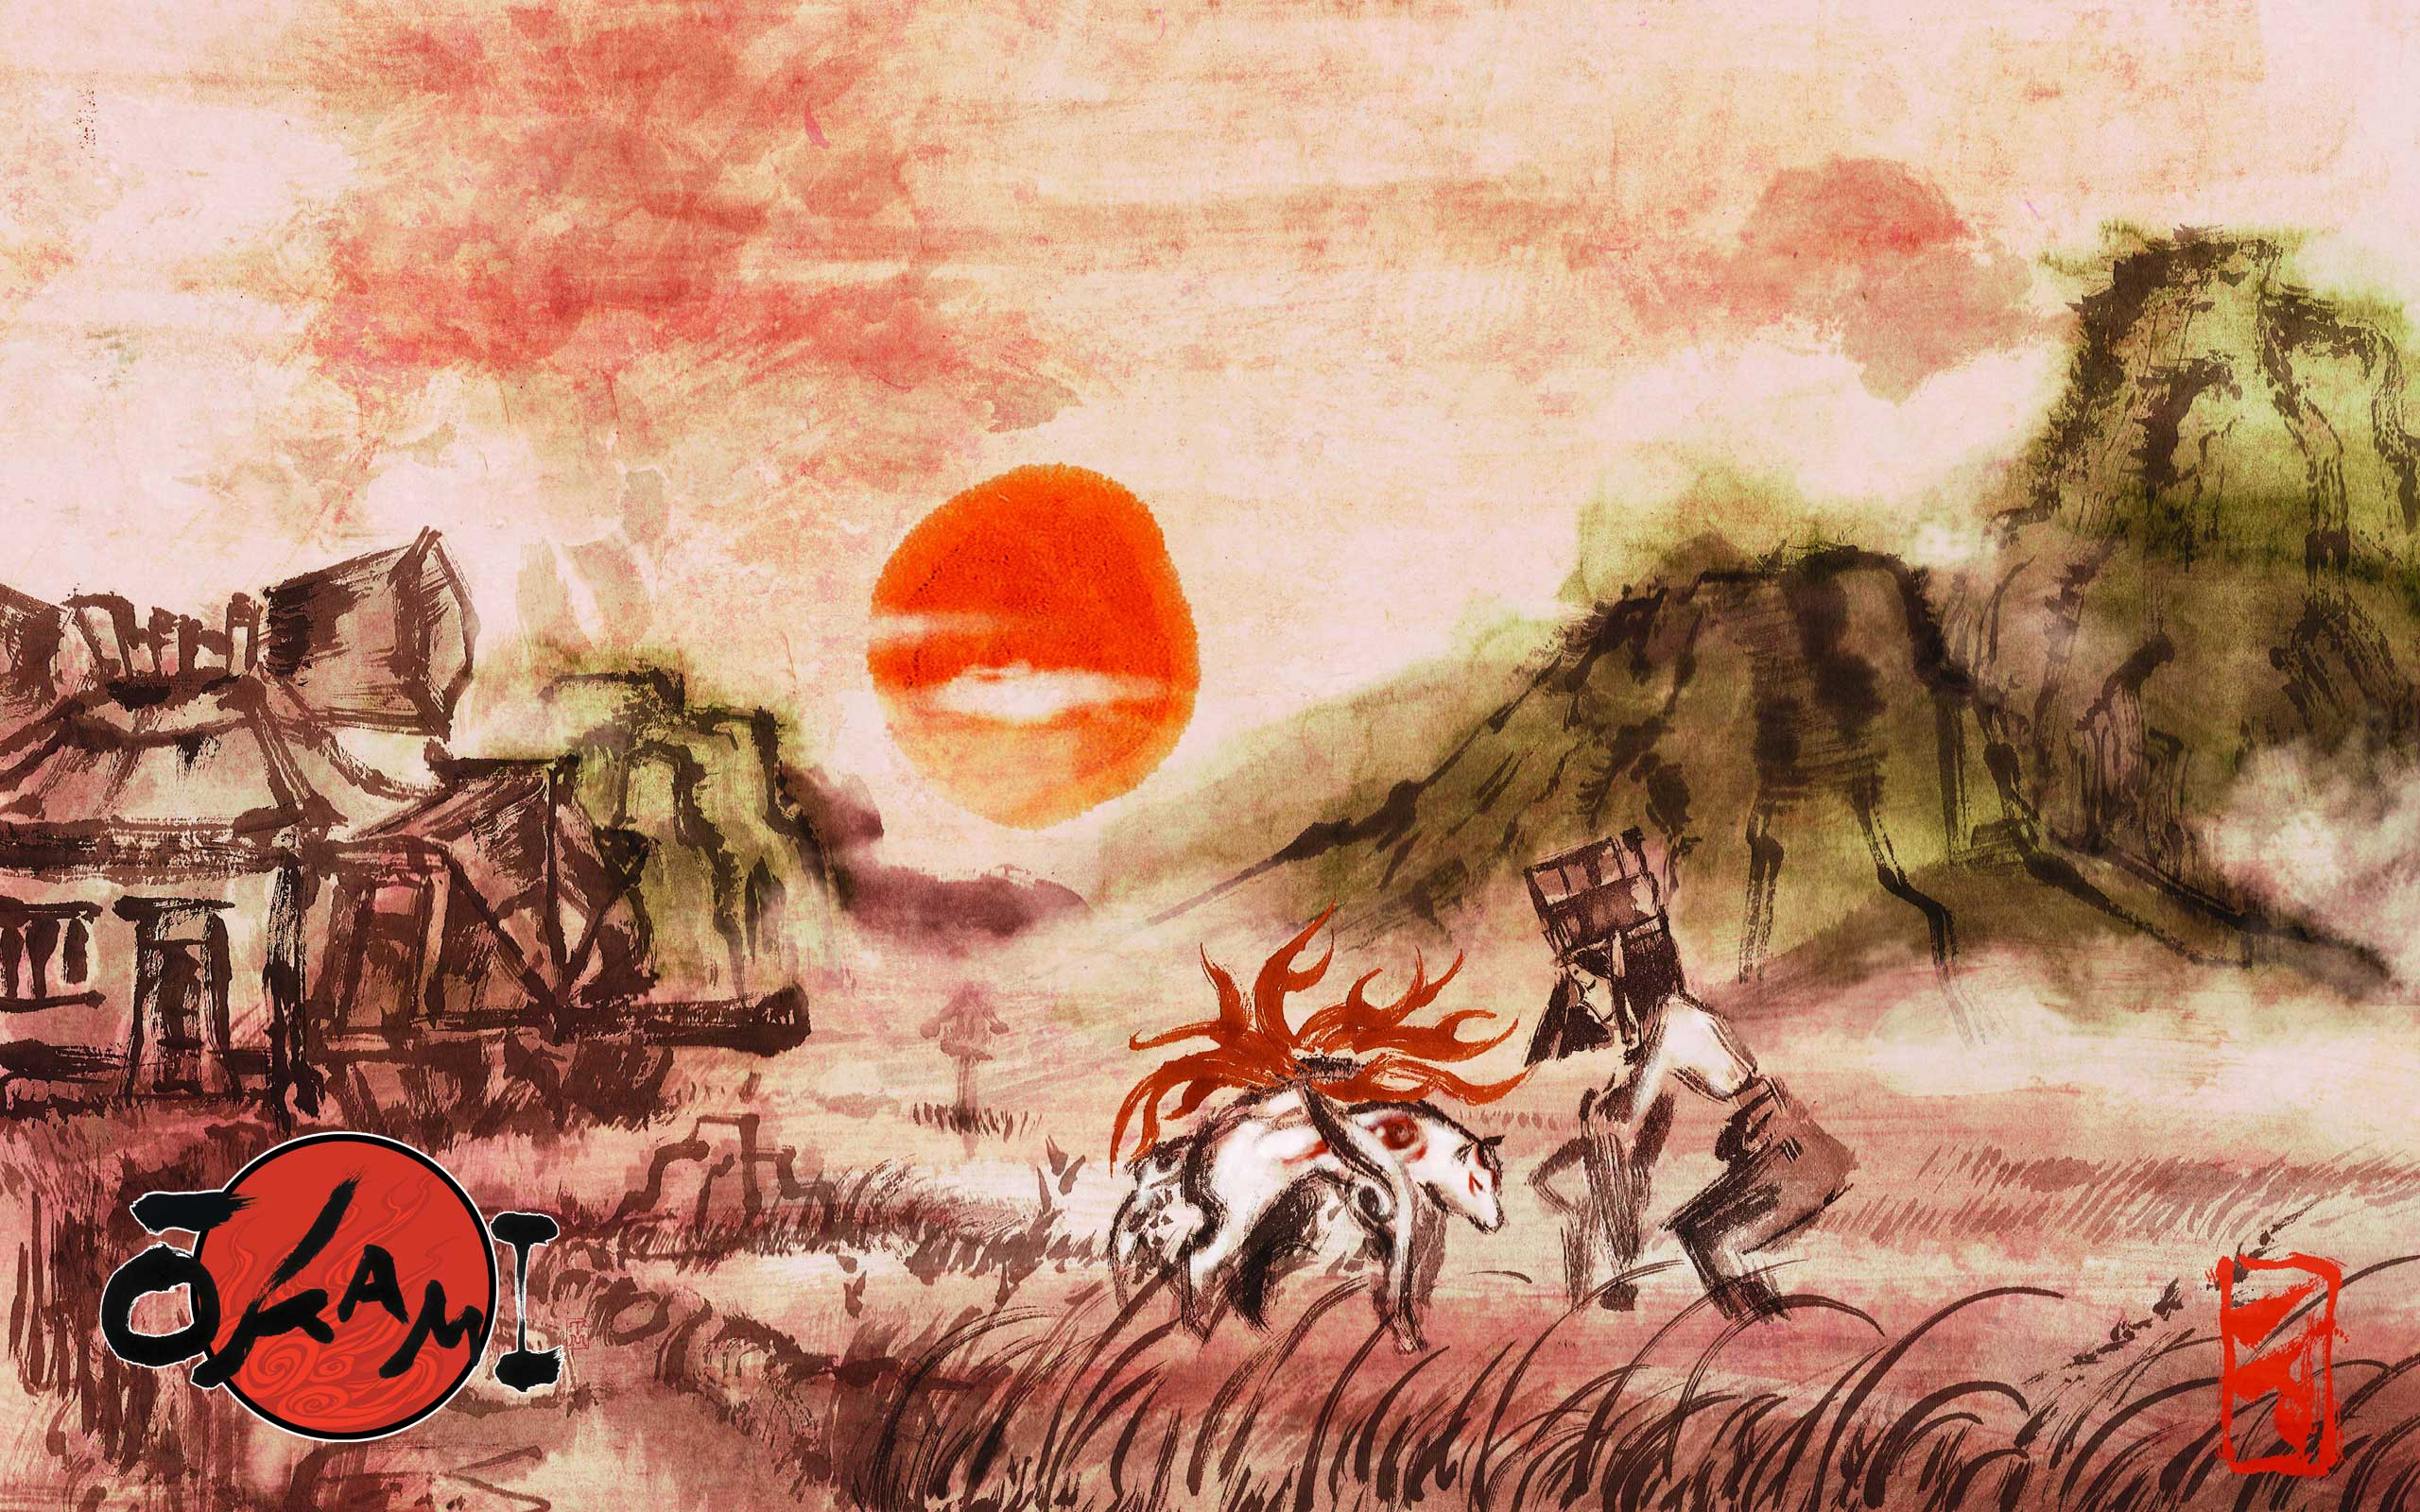 Okami art for Is wallpaper in style